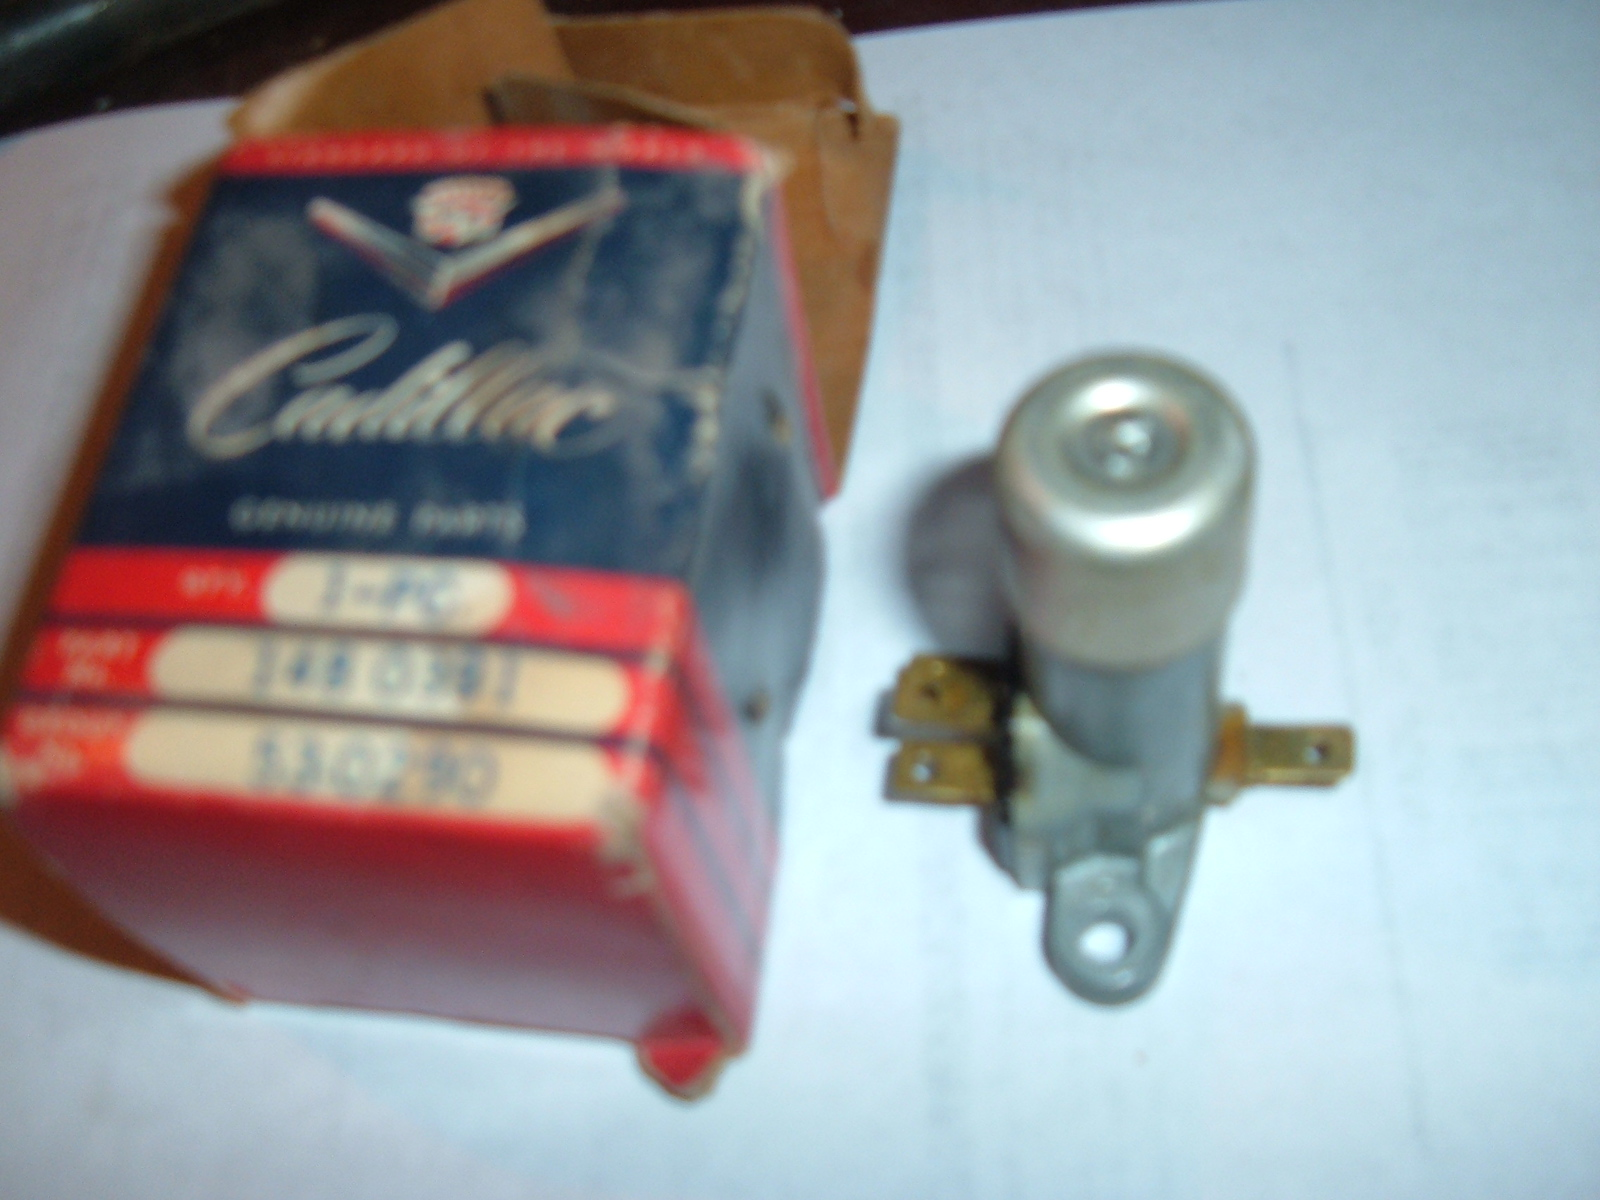 1961 62 63 cadillac headlight dimmer switch guide-o-matic nos gm 1480391 (z 1480391)